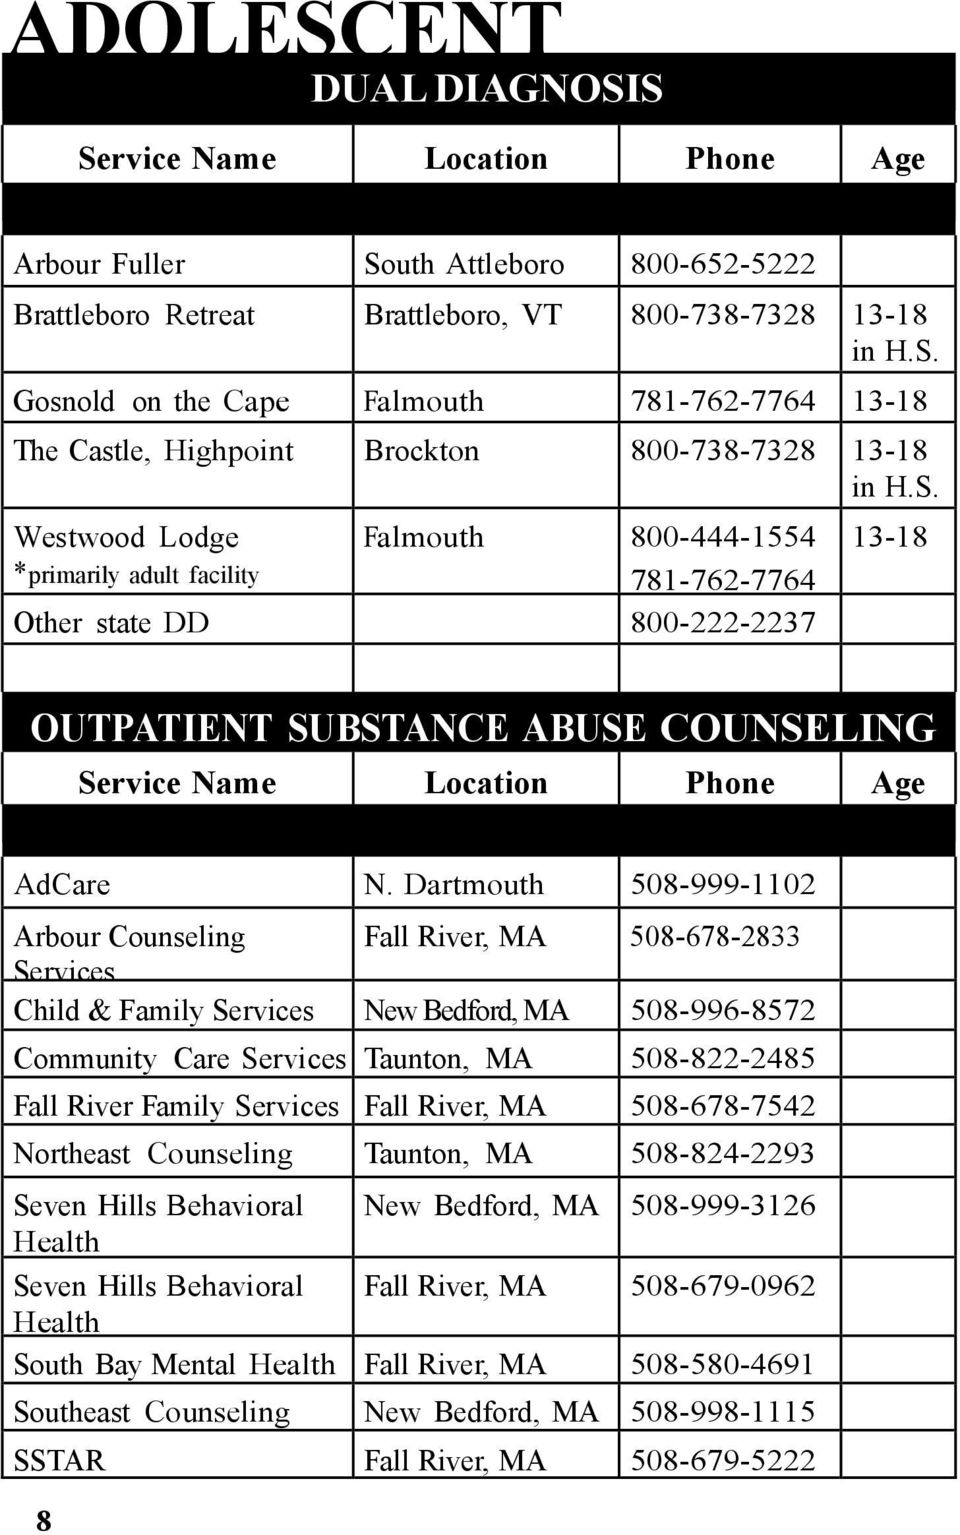 Dartmouth 508-999-1102 Arbour Counseling Fall River, MA 508-678-2833 Services Child & Family Services New Bedford, MA 508-996-8572 Community Care Services Taunton, MA 508-822-2485 Fall River Family